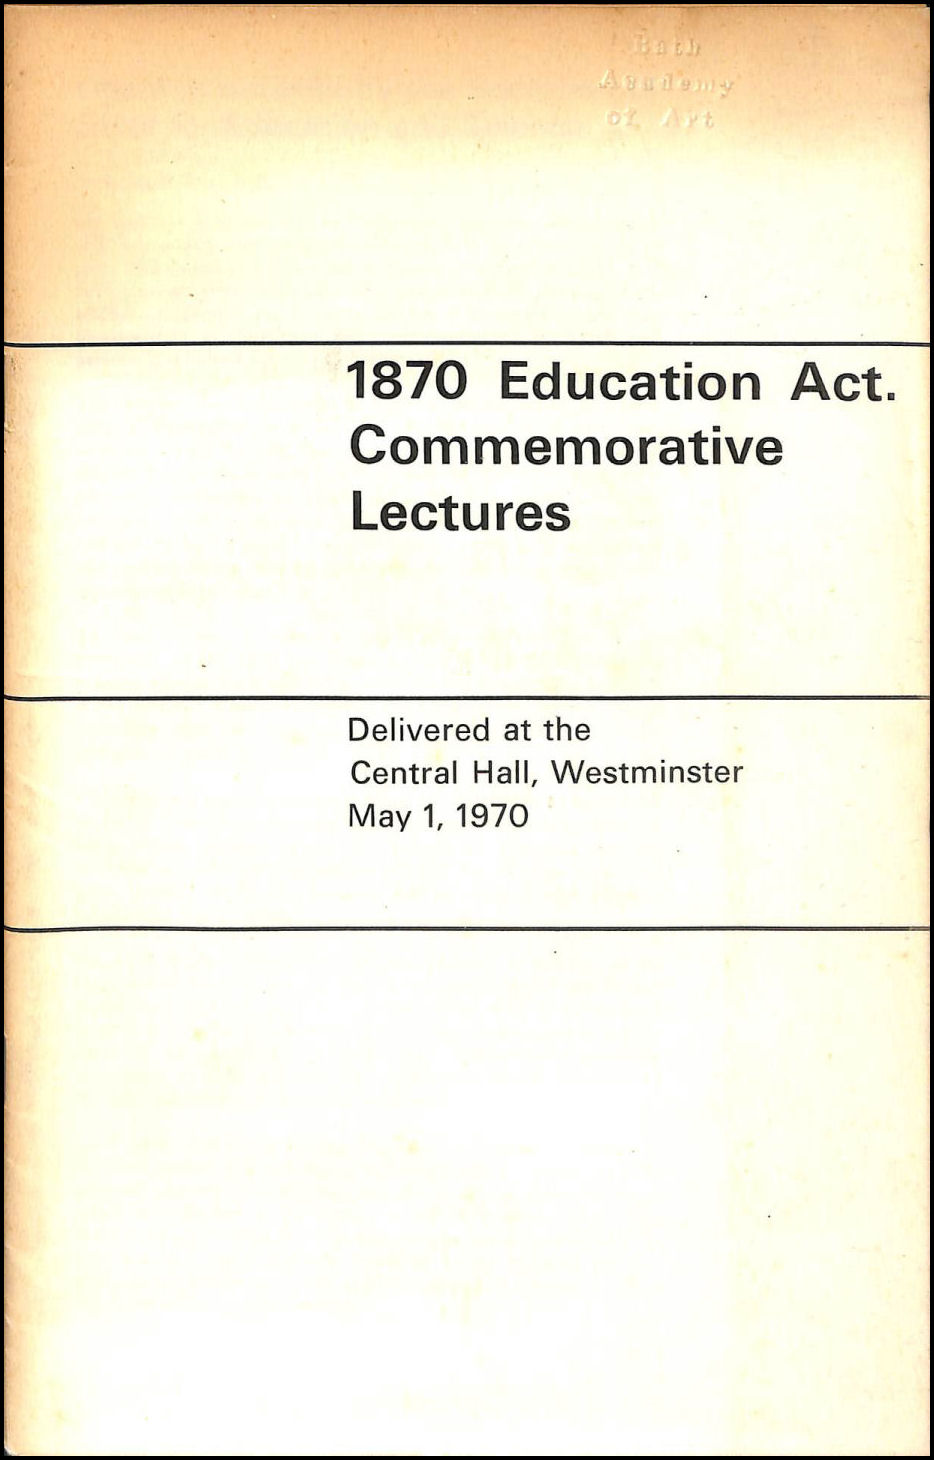 Image for 1870 Education Act. Commemorative Lectures Delivered at te Central Hall, Westminster May 1, 1970